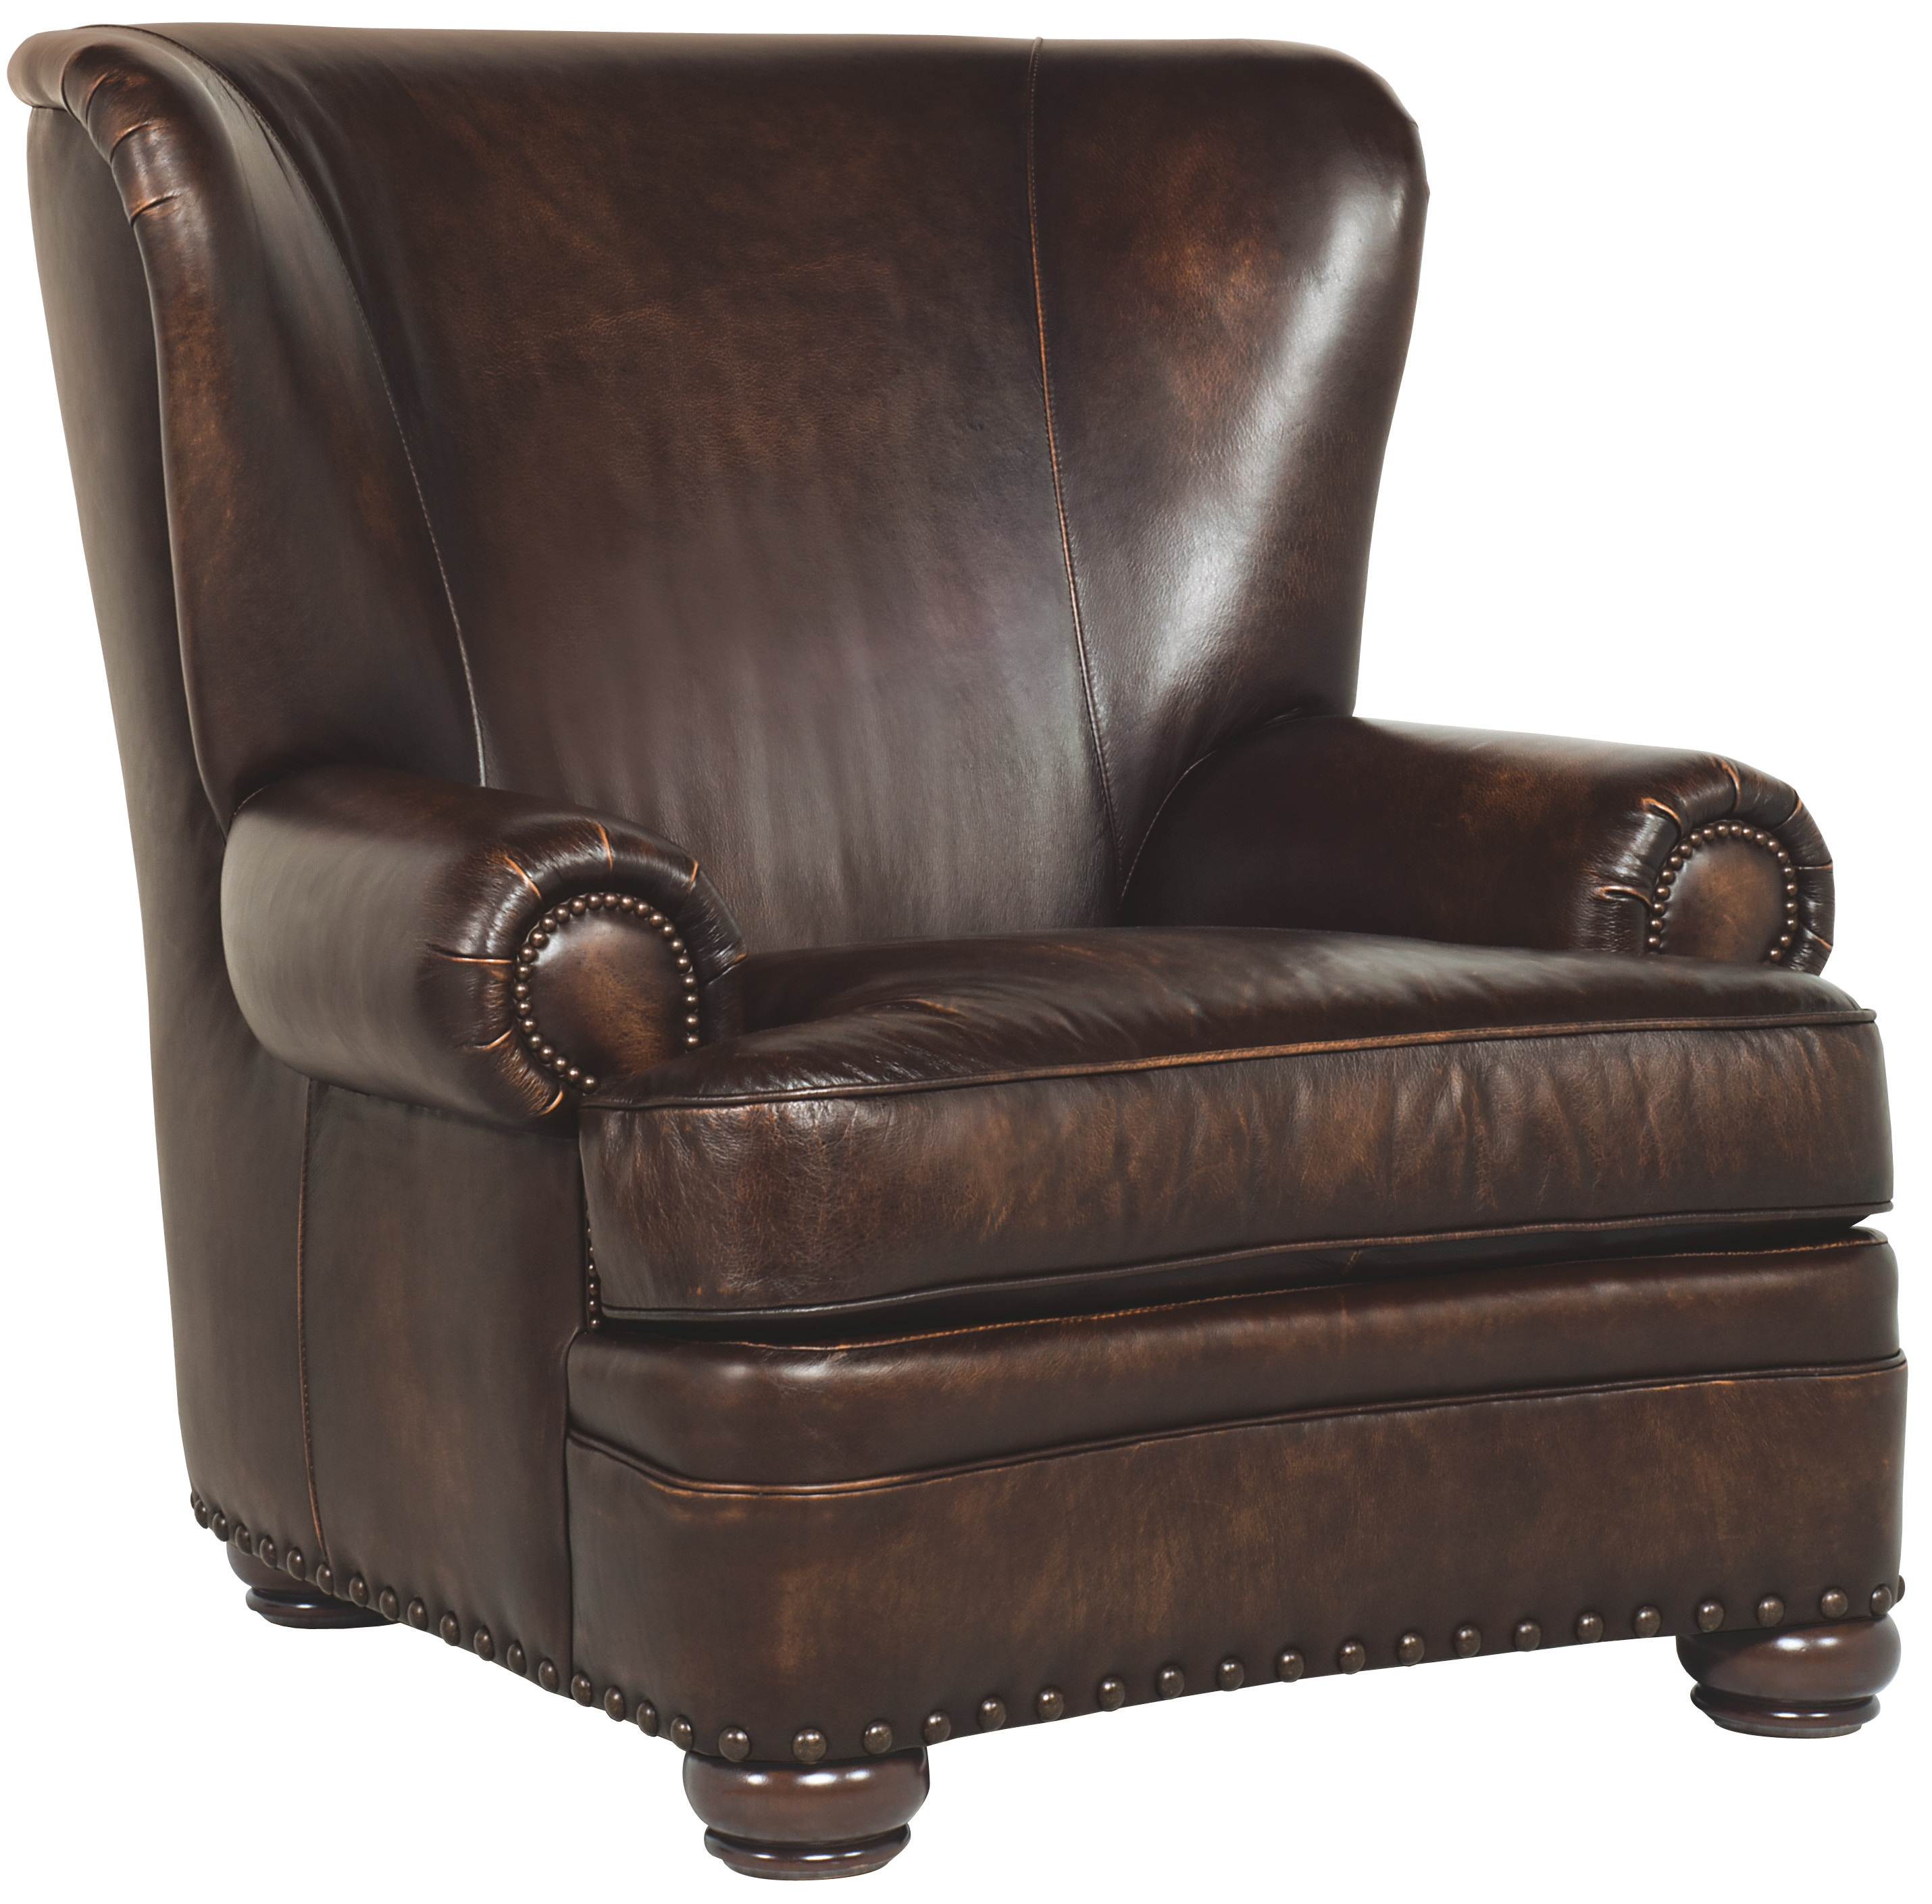 The Benton Leather Club Chair By Bernhardt Is A High Backed Traditional Leather  Chair. Rolled Arms, Turned Wood Legs And Two Types Of Nailhead Trim Accent  ...